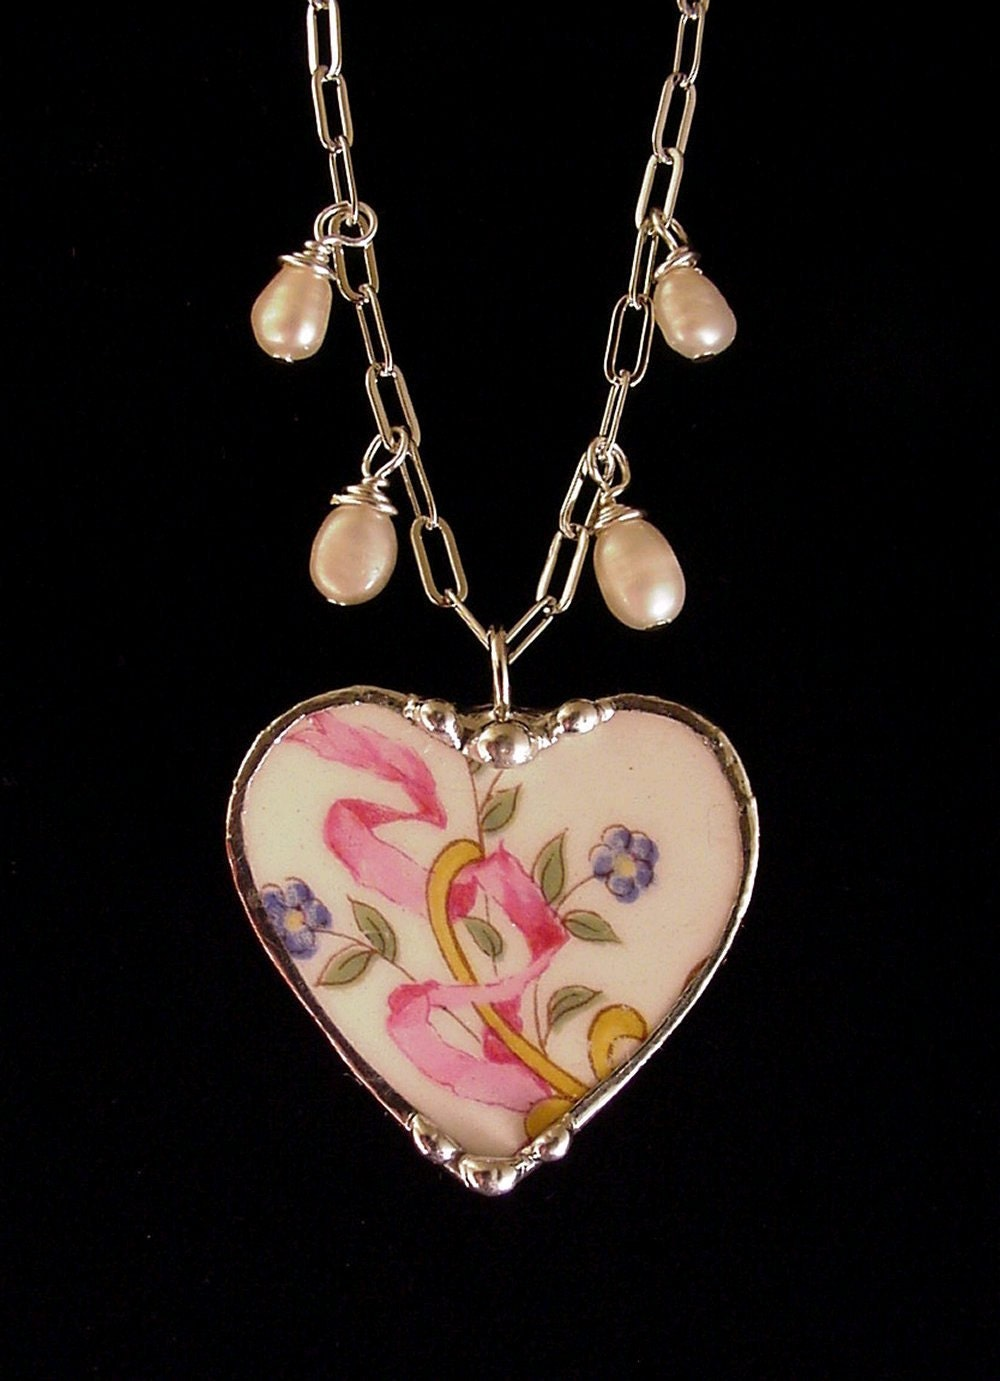 Broken China Jewelry heart pendant necklace forget me nots, pink ribbon, pearls